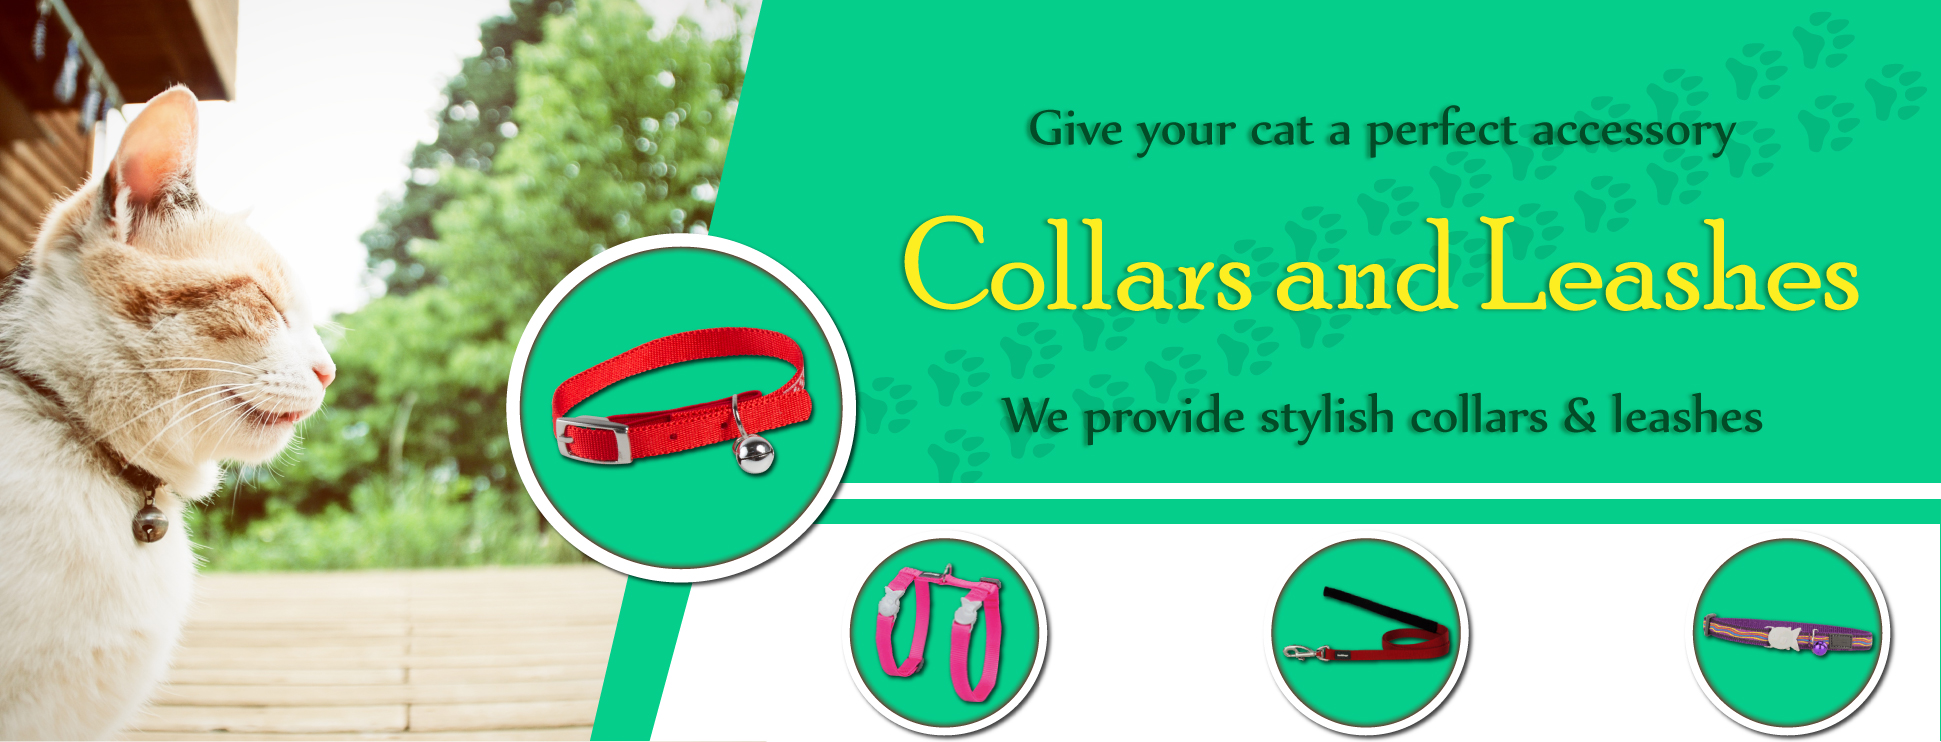 cat-collar-for-web1.jpg